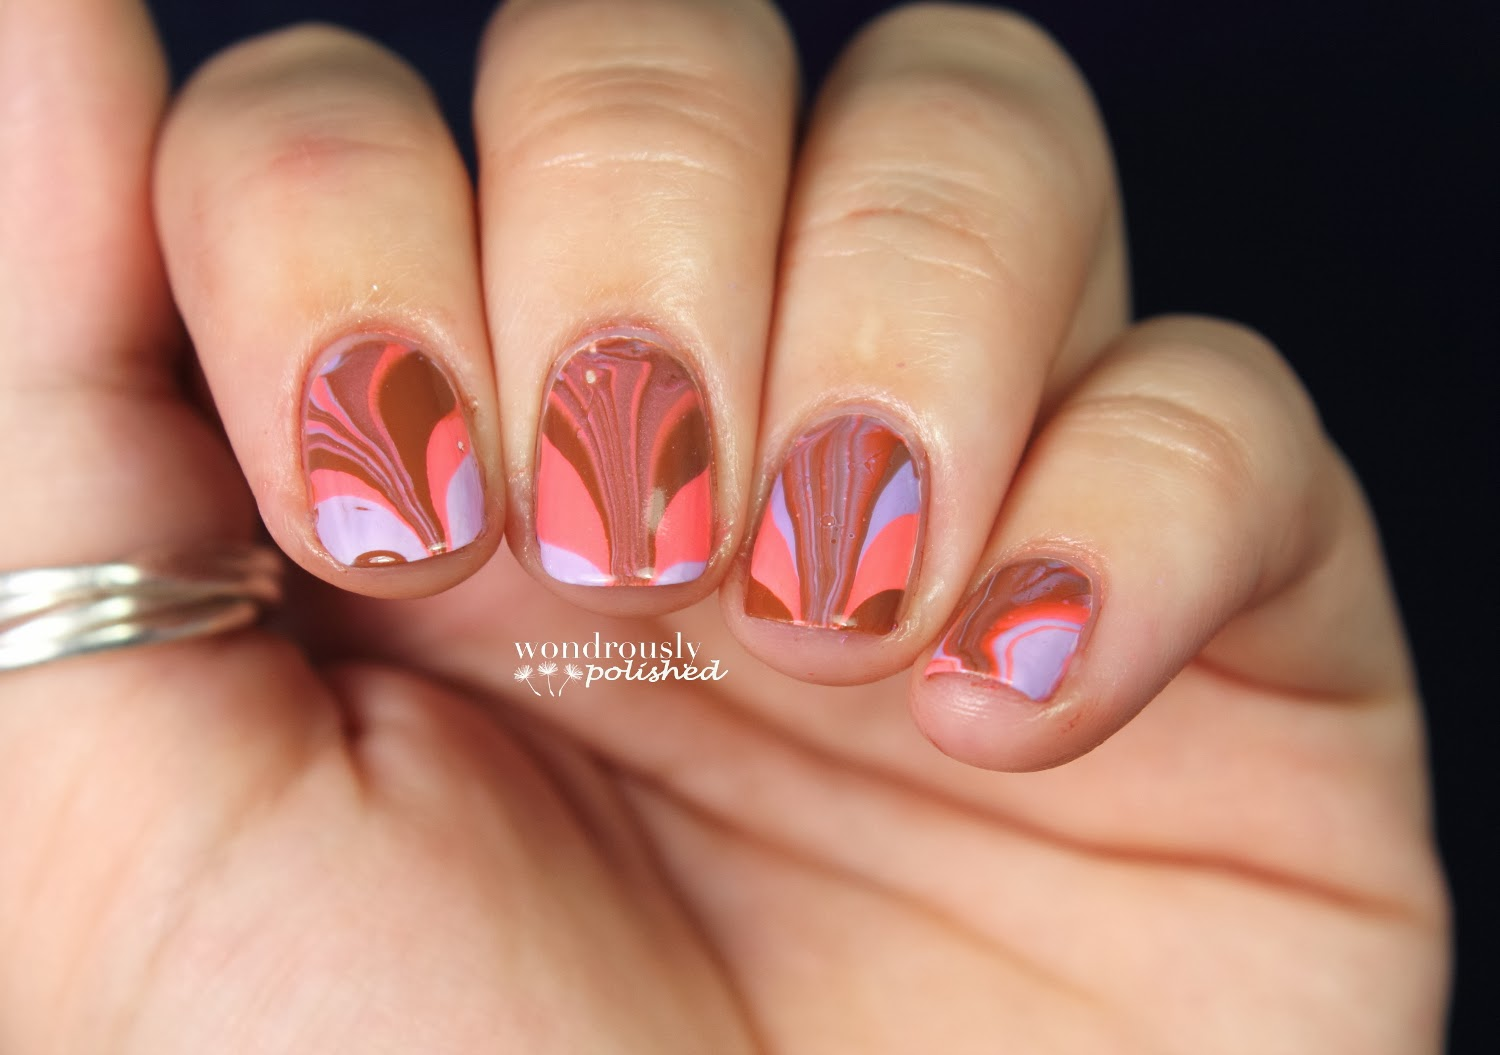 Wondrously Polished: 31 Day Nail Art Challenge - Day 20: Water Marble